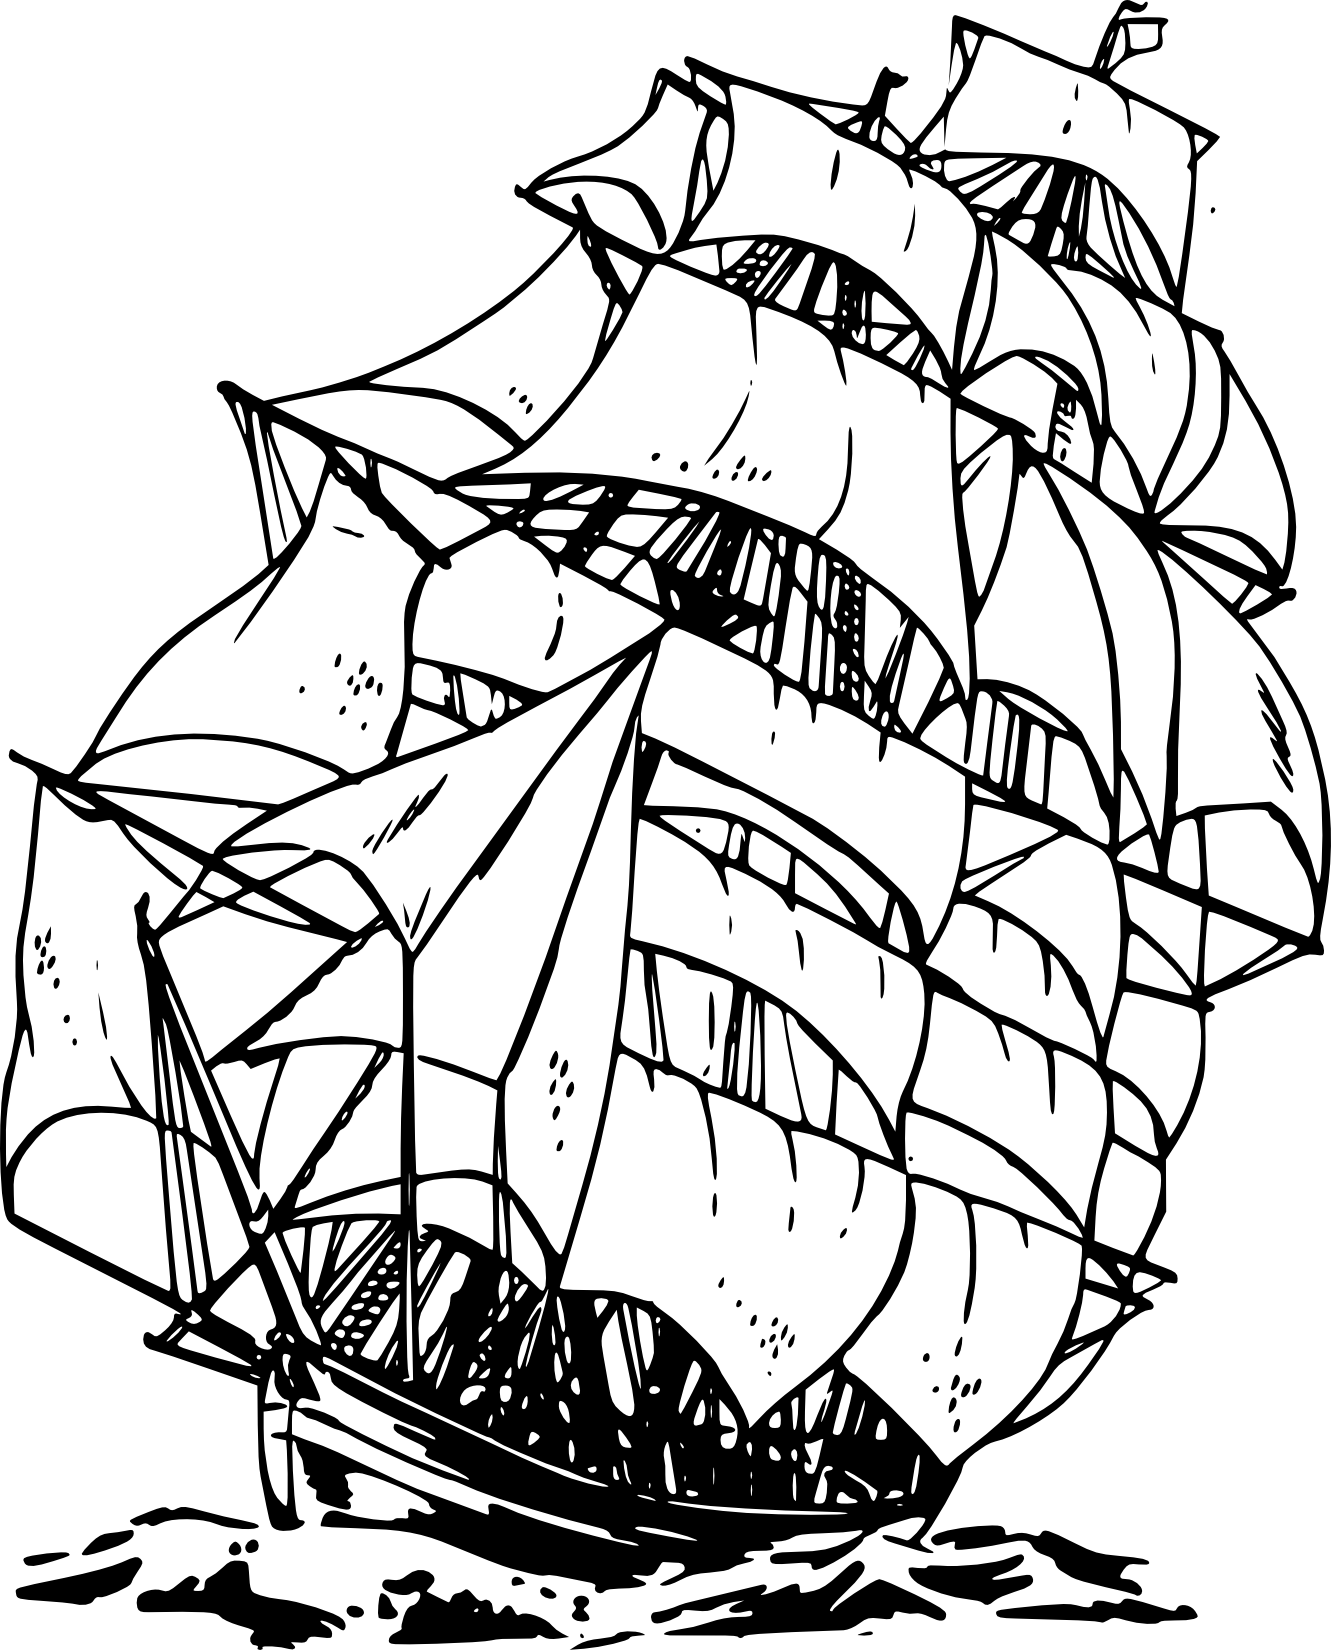 canon drawing ship